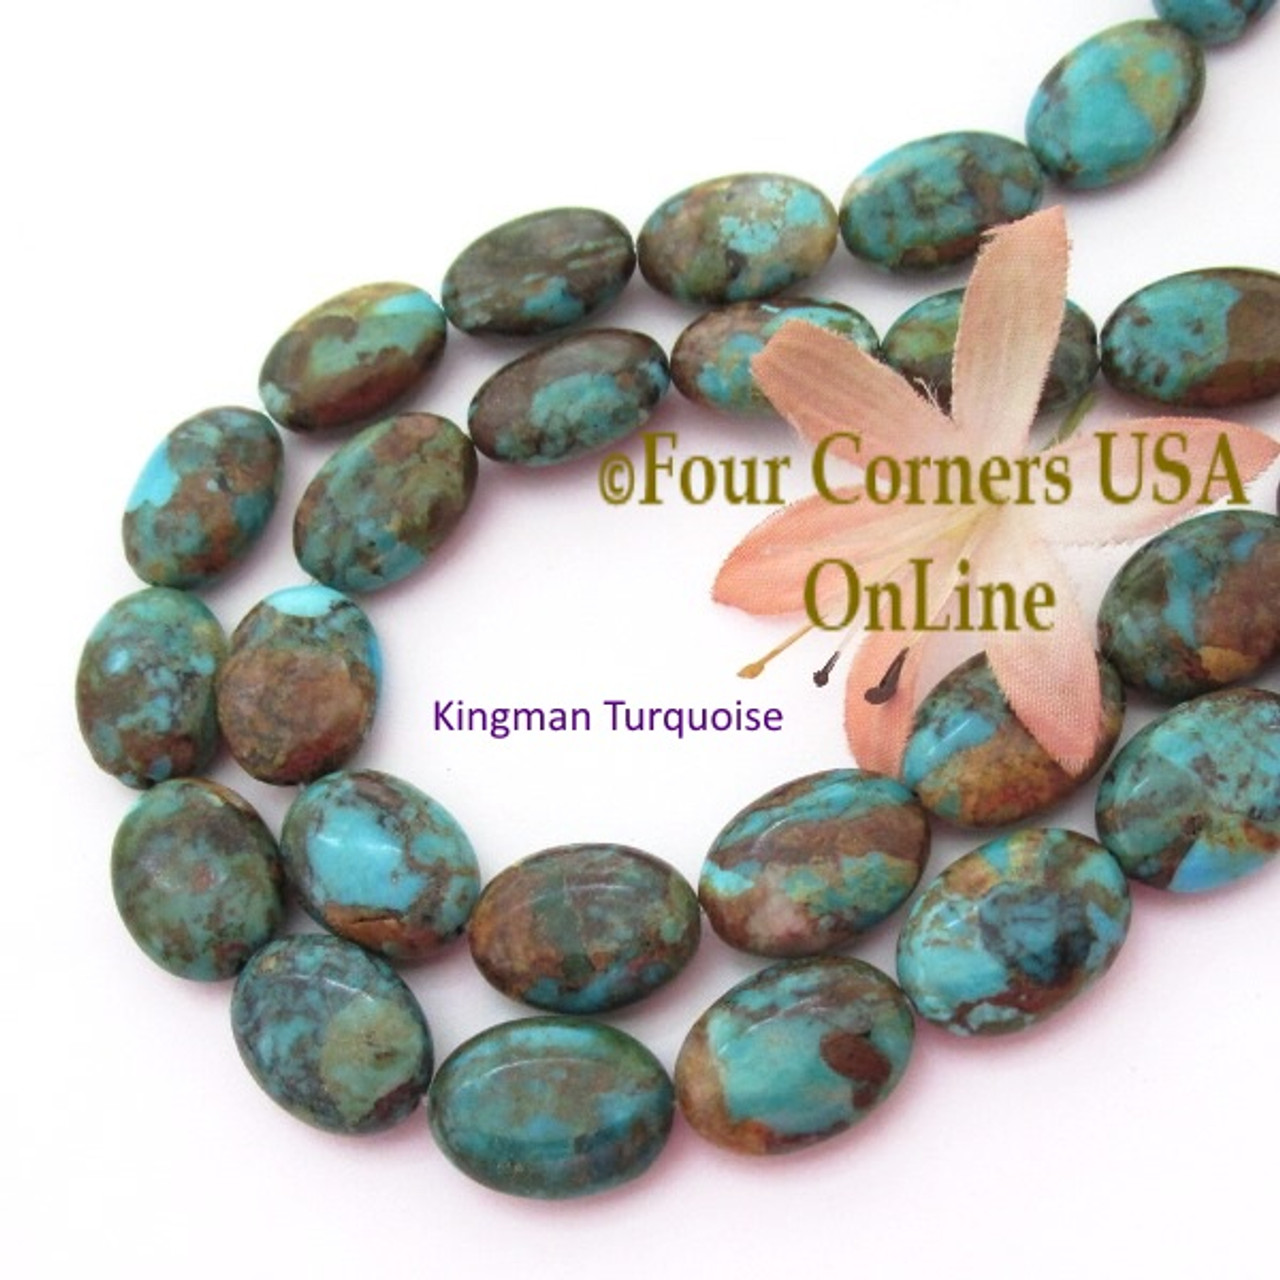 tq american round four turquoise usa blue old jewelry inch kingman strands beads online corners supplies